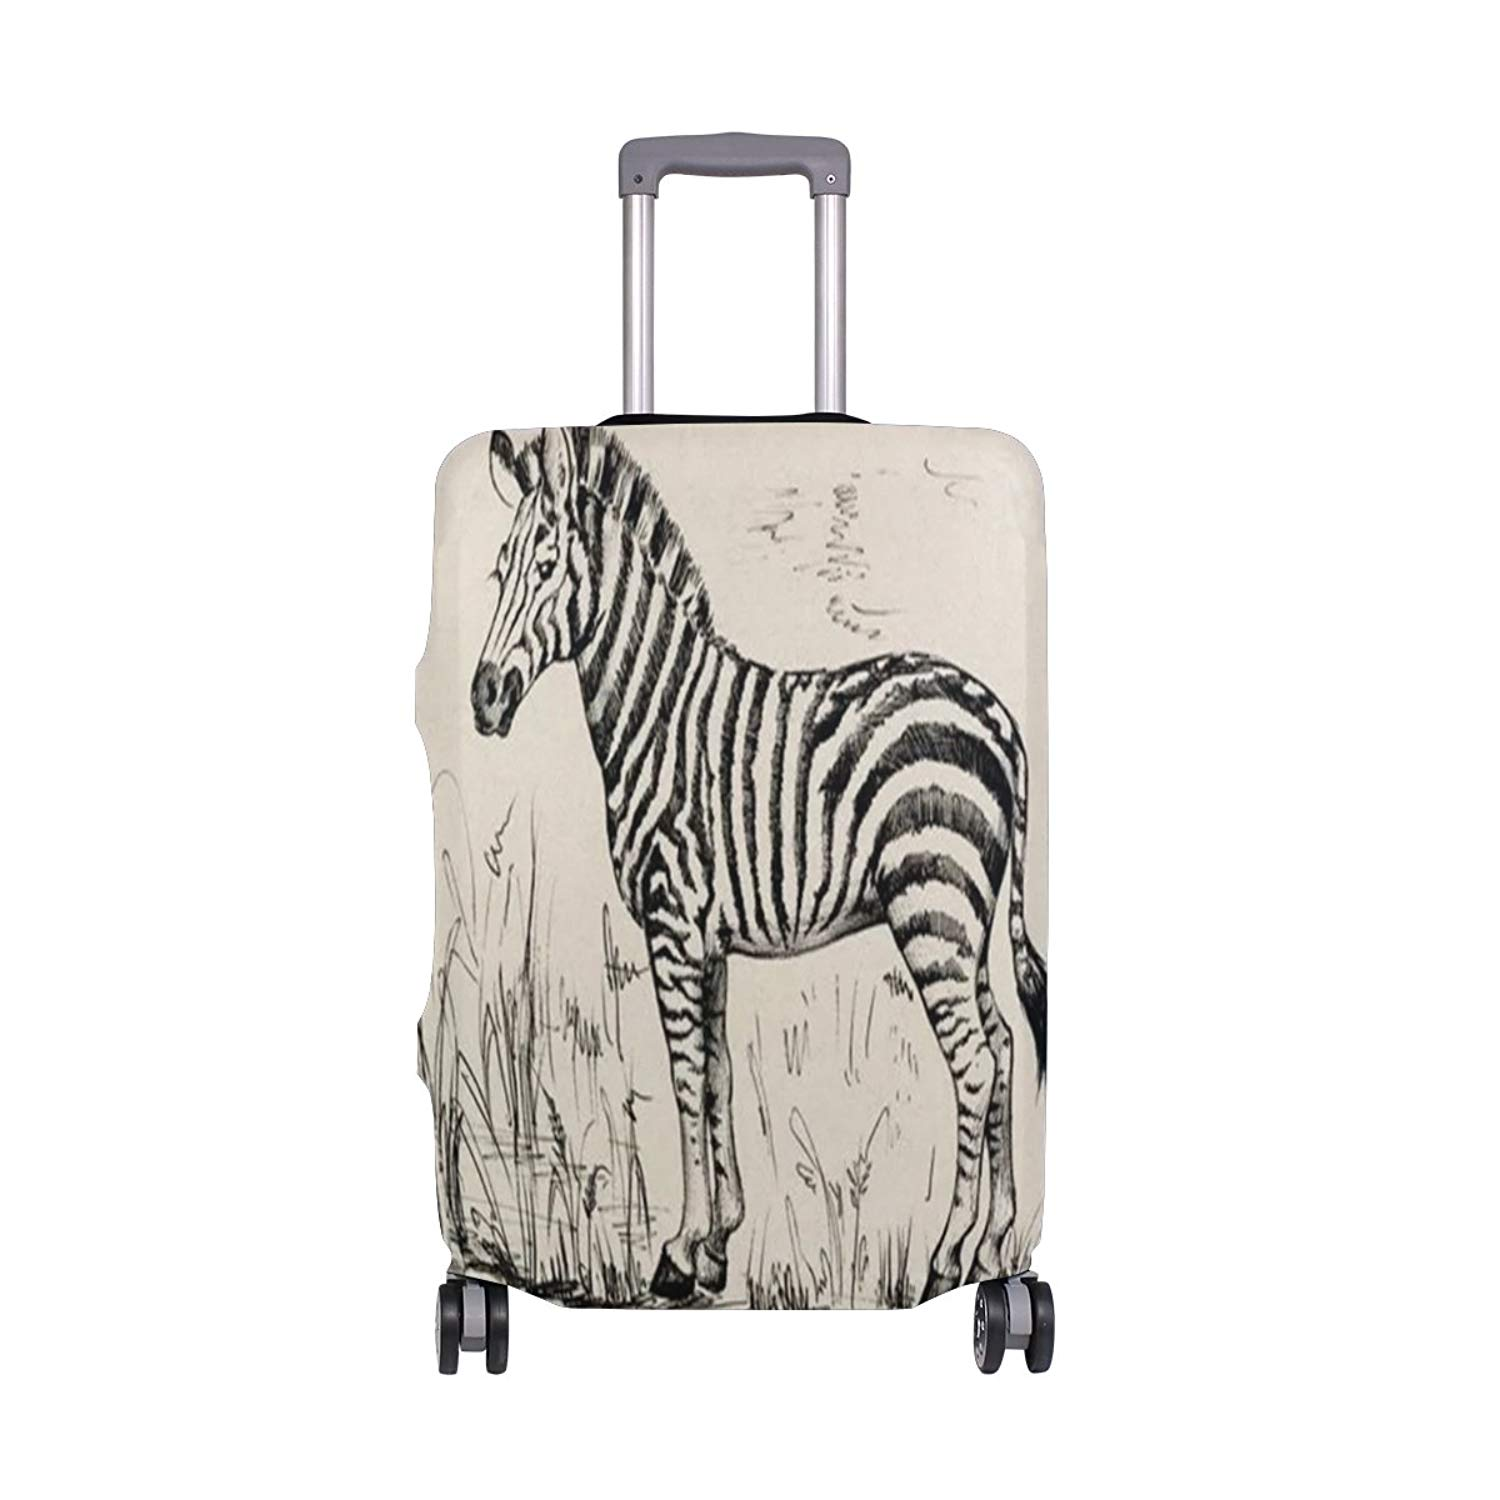 Luggage Protective Covers with Zebra Stripes Washable Travel Luggage Cover 18-32 Inch